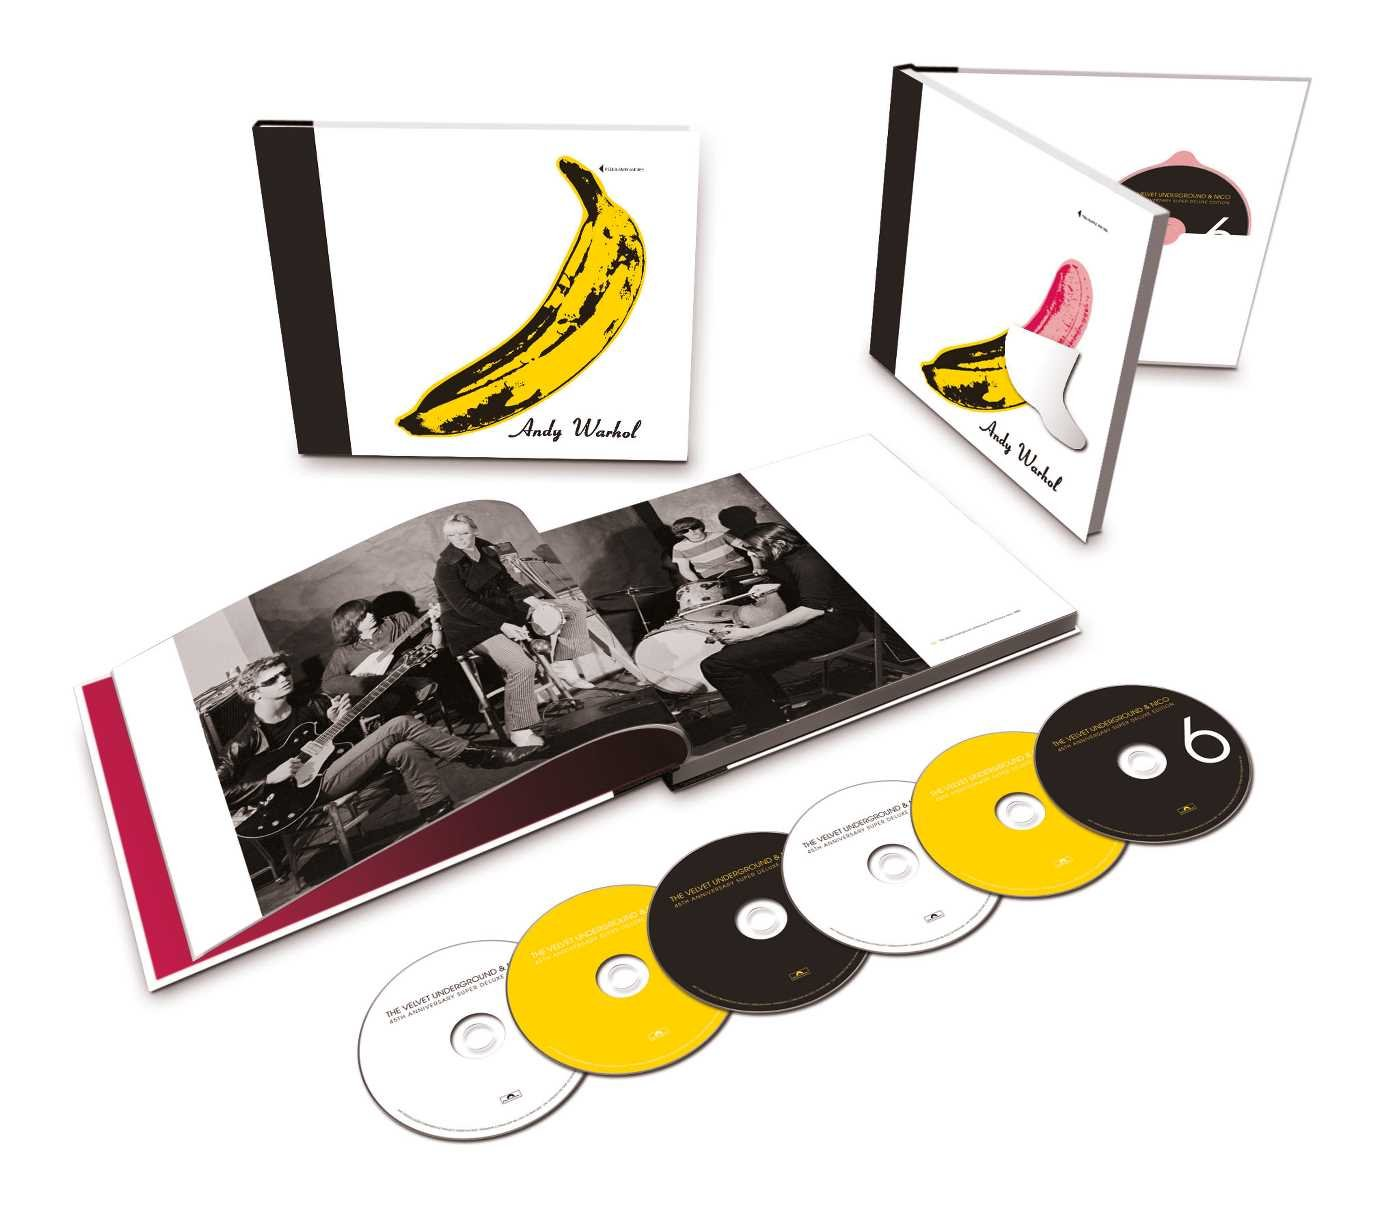 The Velvet Underground & Nico - 45th Anniversary [6 CD][Super Deluxe Edition]